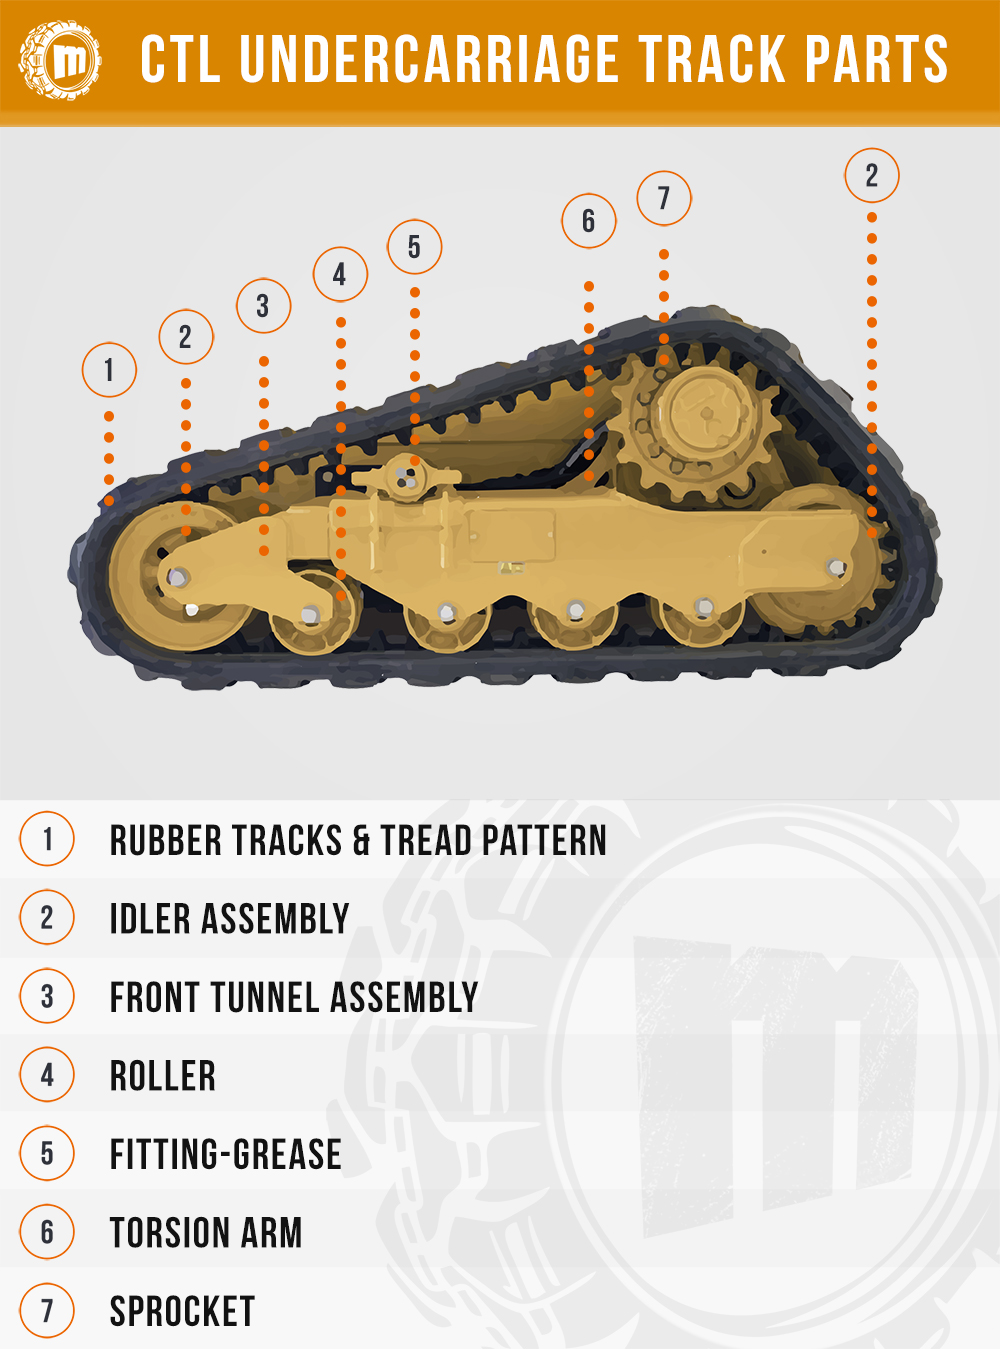 Rubber Tracks Guide - Monster Tires - Industrial Tires